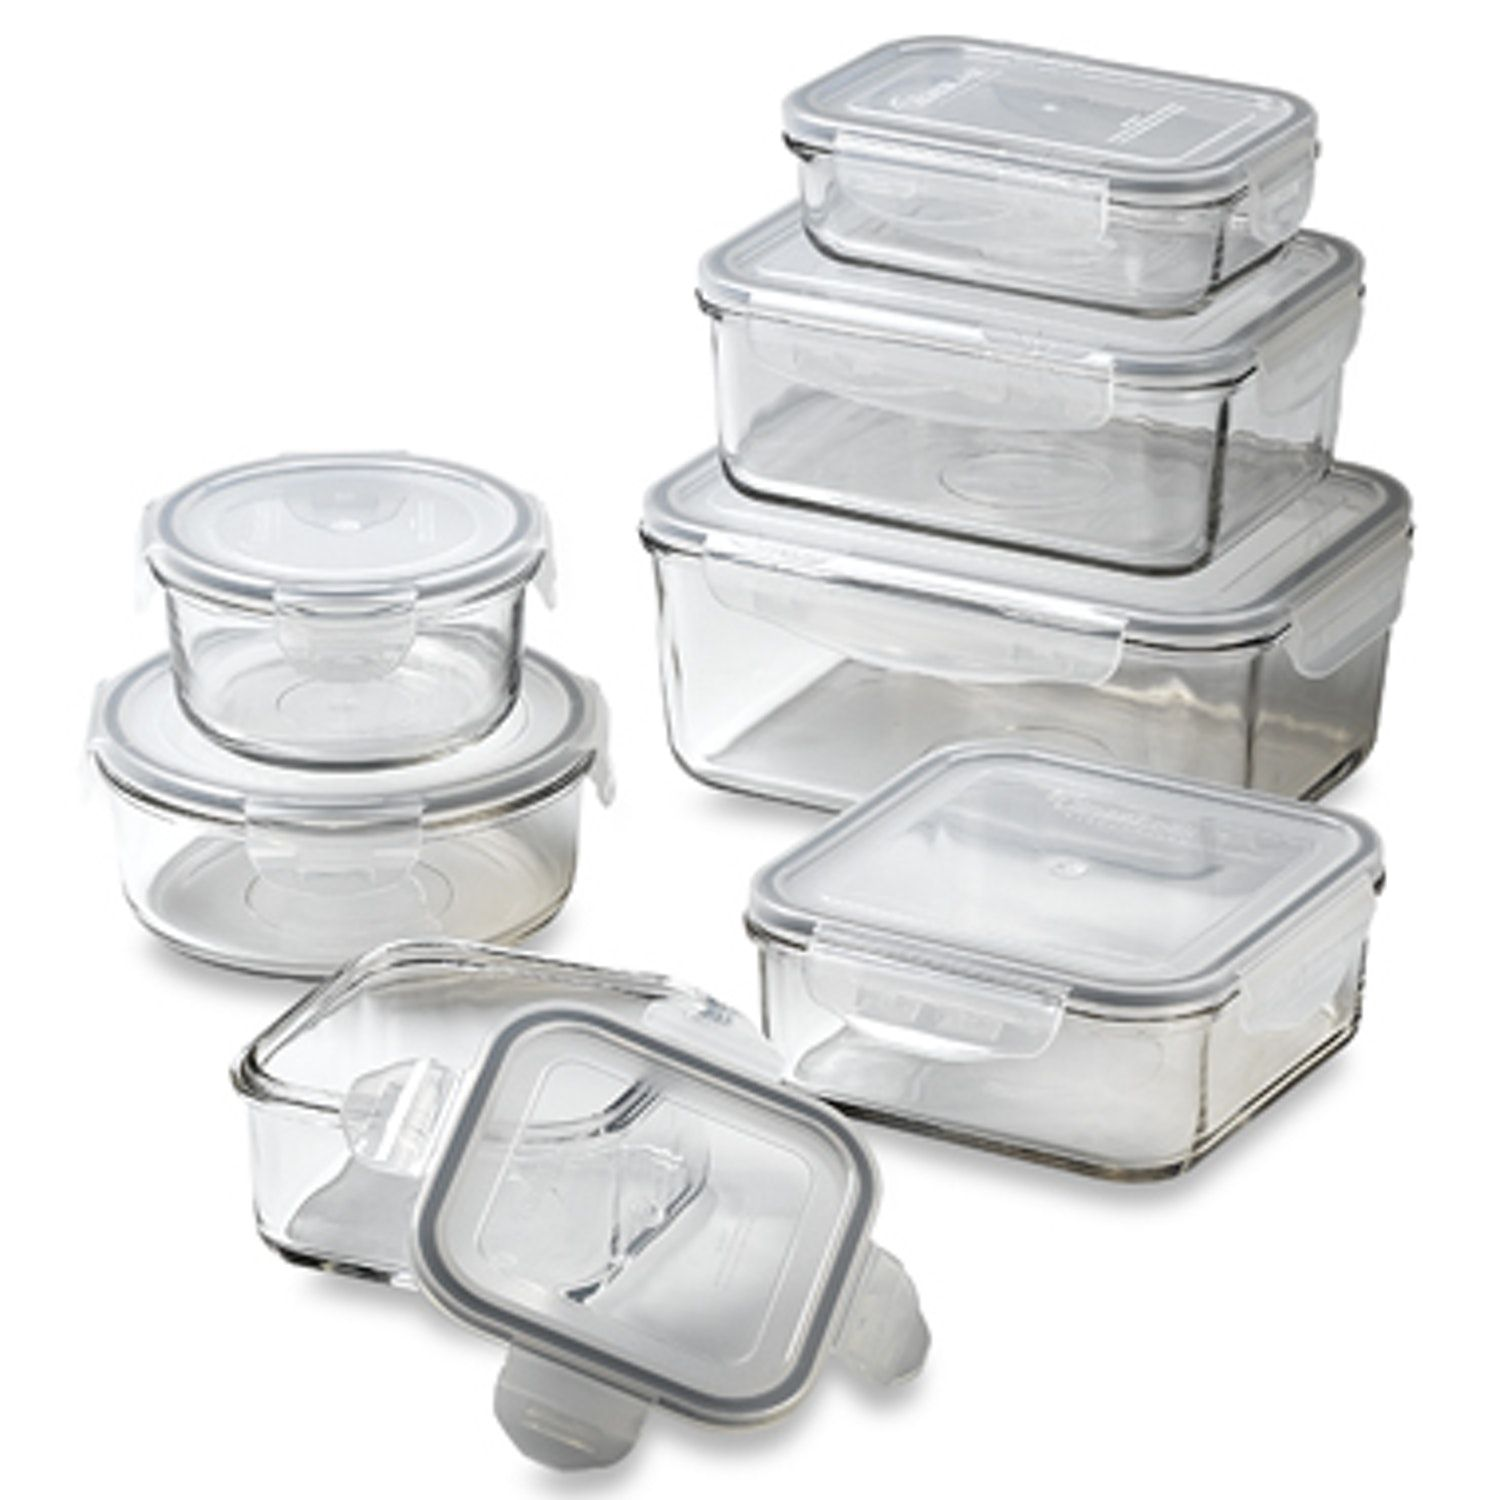 Good Product Snapware Glass Lock Containers Glass Storage